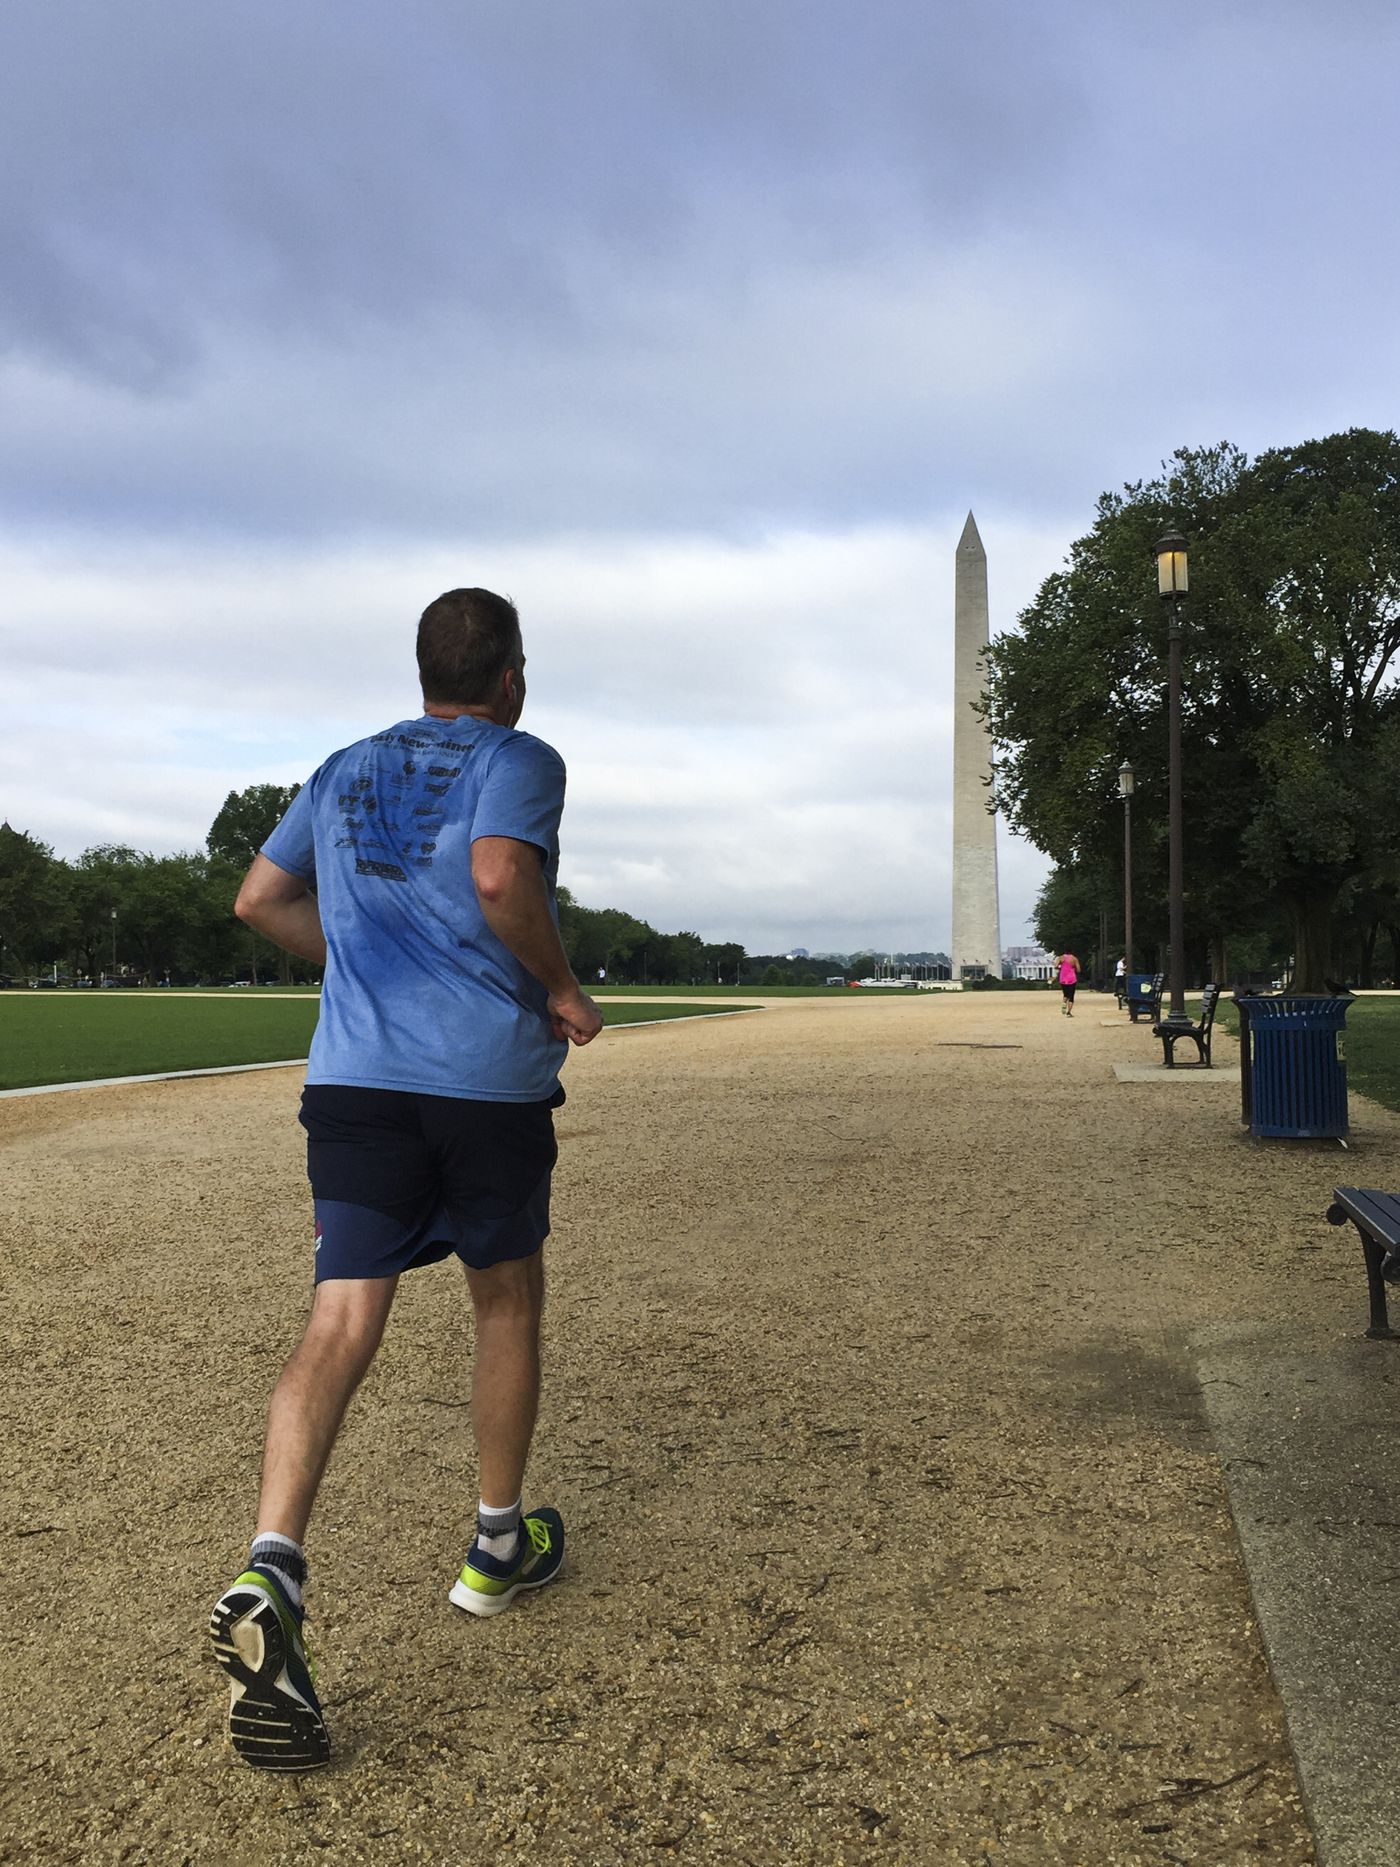 Sen. Dan Sullivan approaches the Washington Monument on the National Mall during a morning run in Washington, D.C., on June 19, 2019. (Marc Lester / ADN)